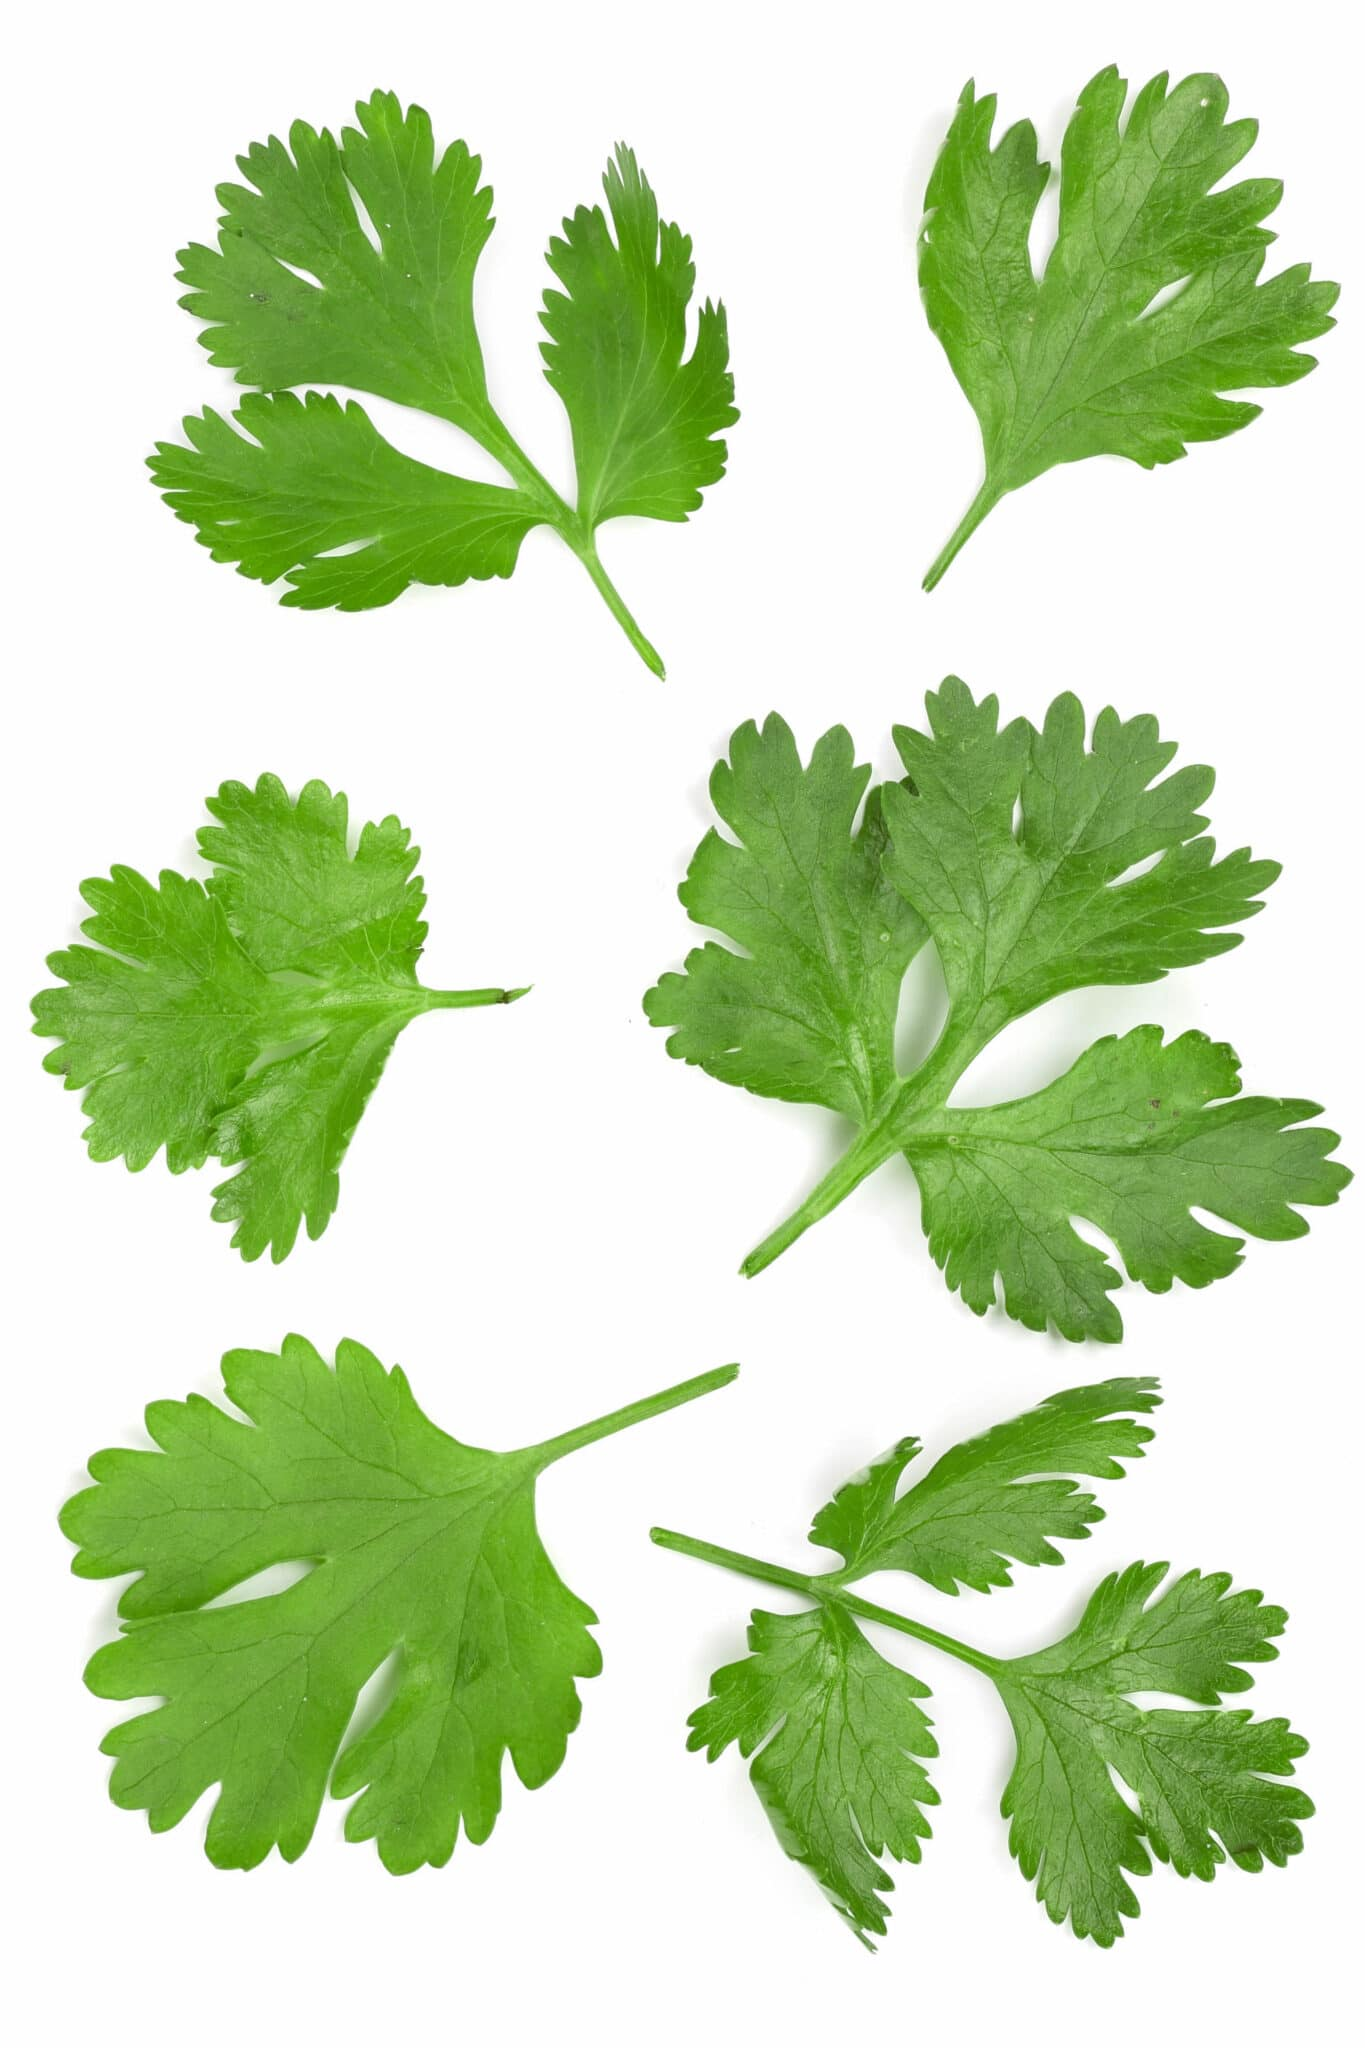 Several types of cilantro leaves on a white background.